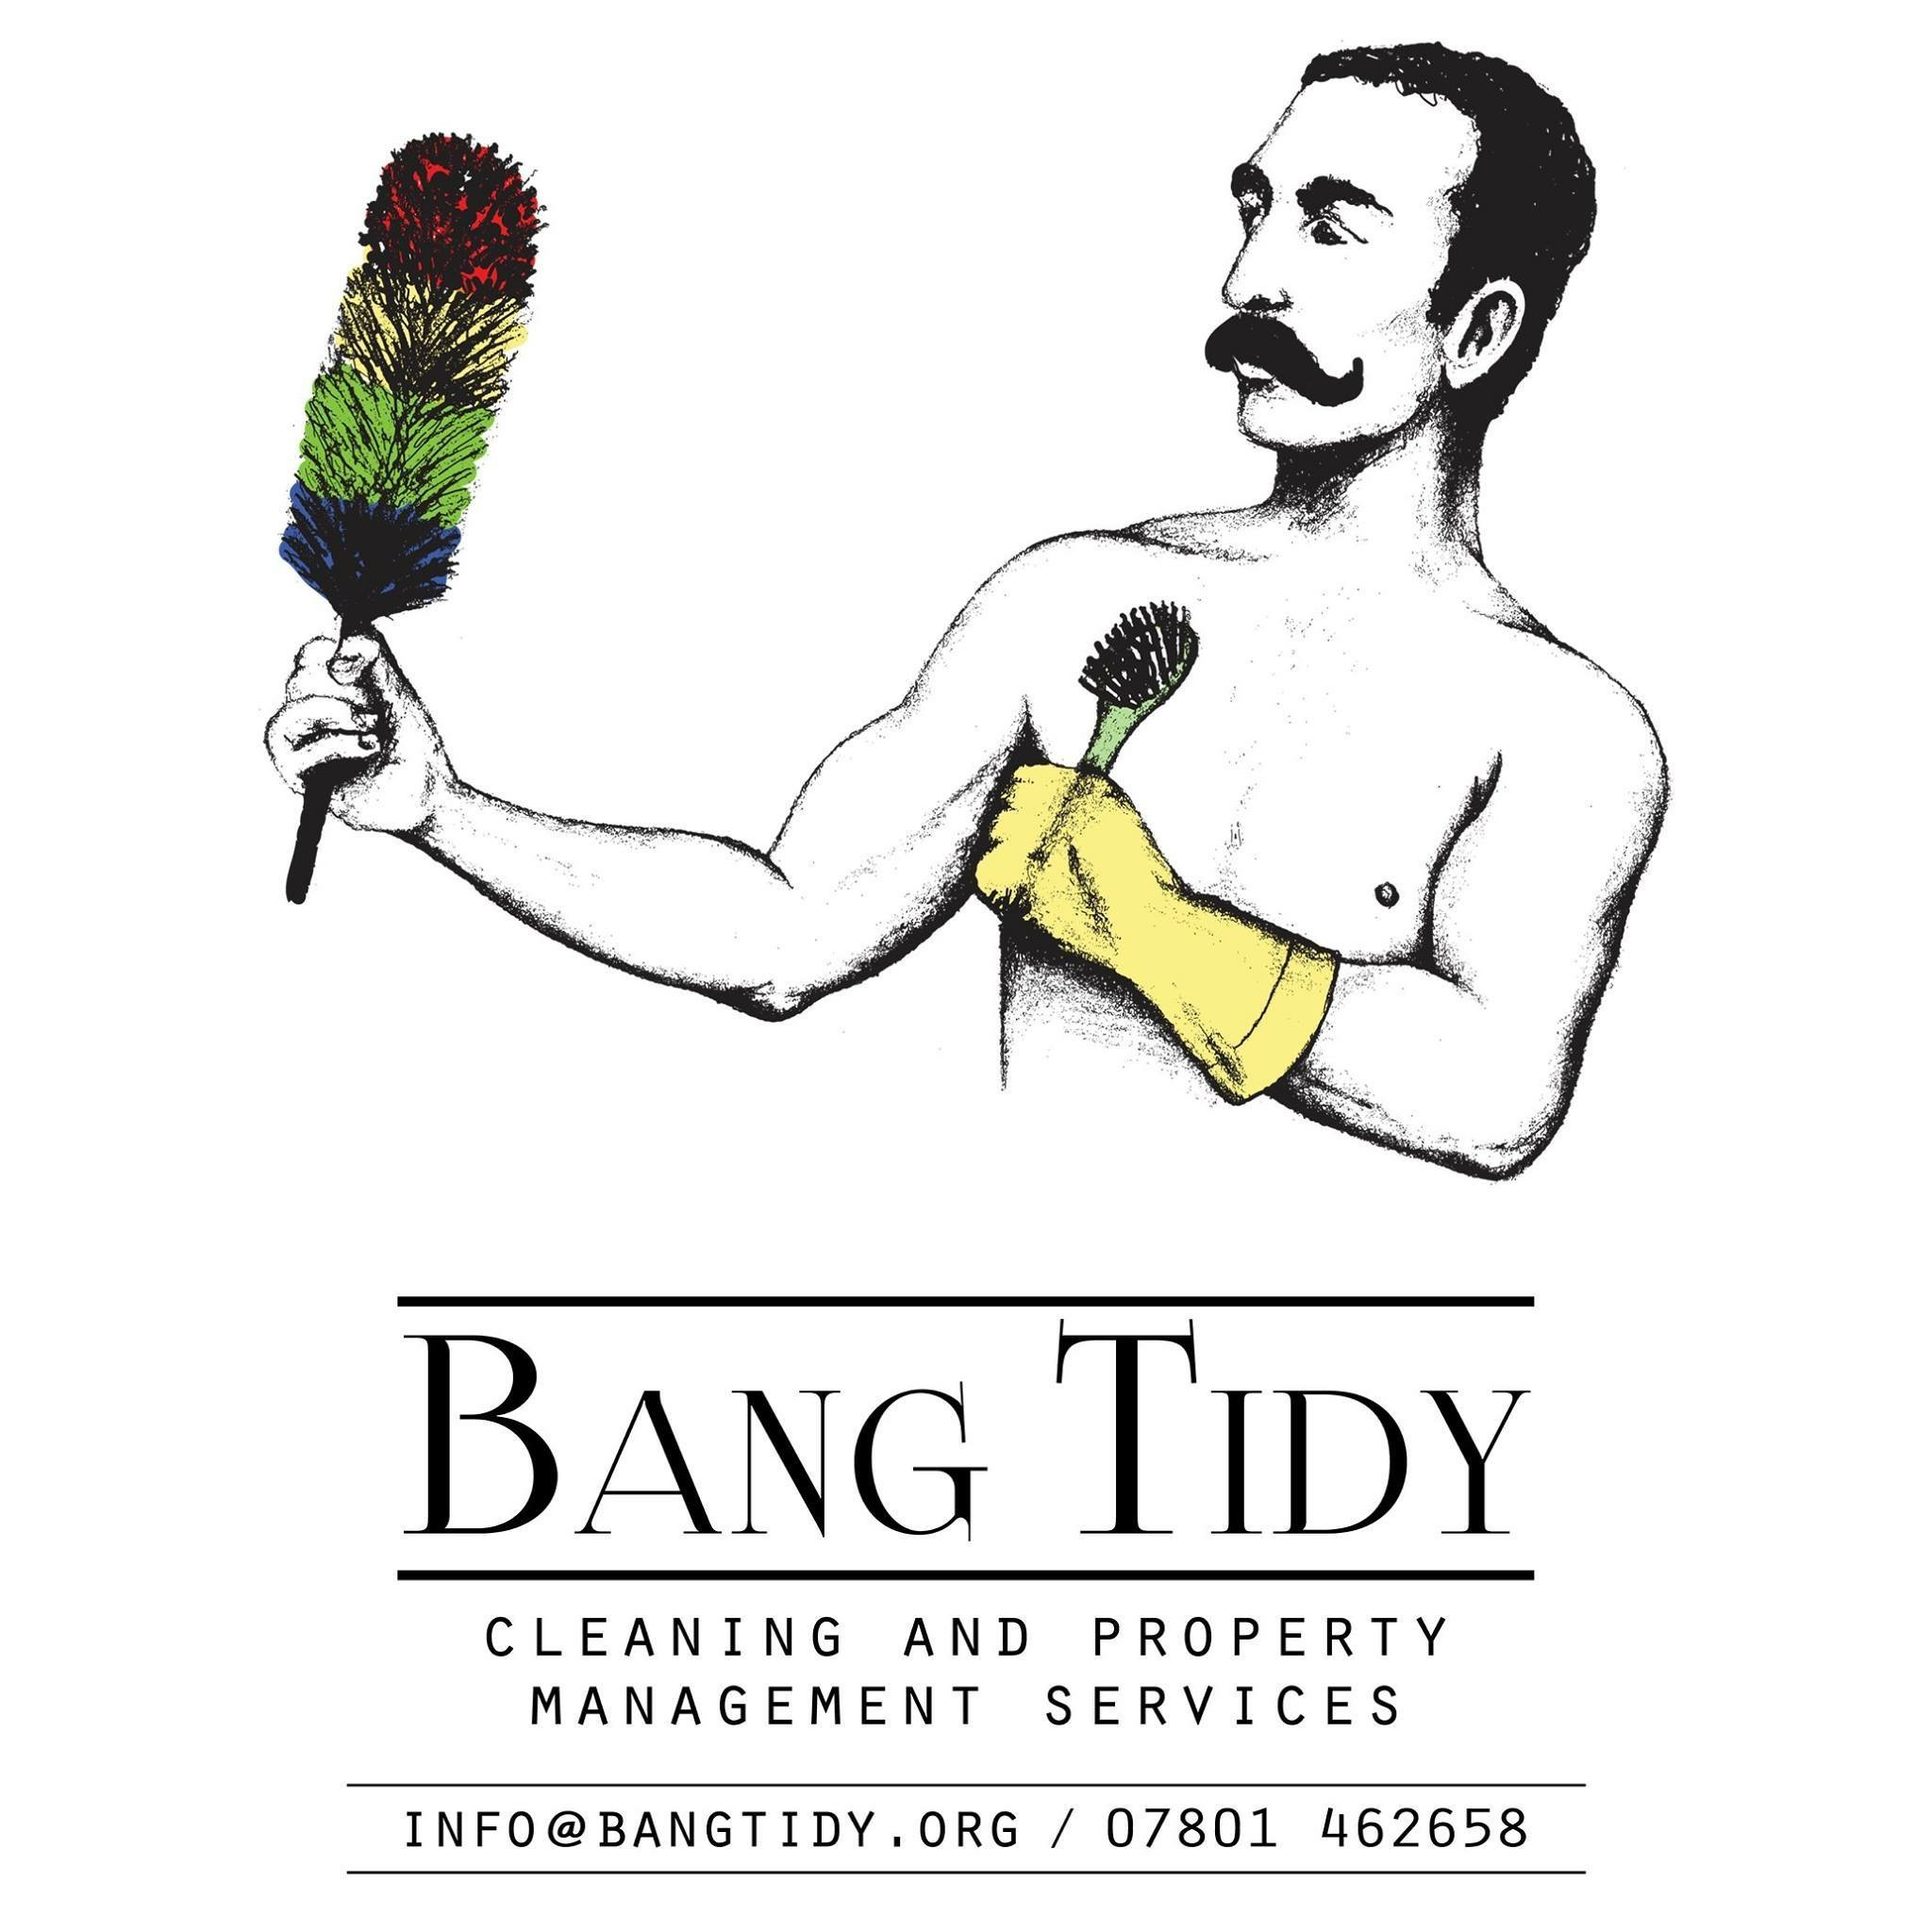 Bang Tidy Cleaning And Property Management Services